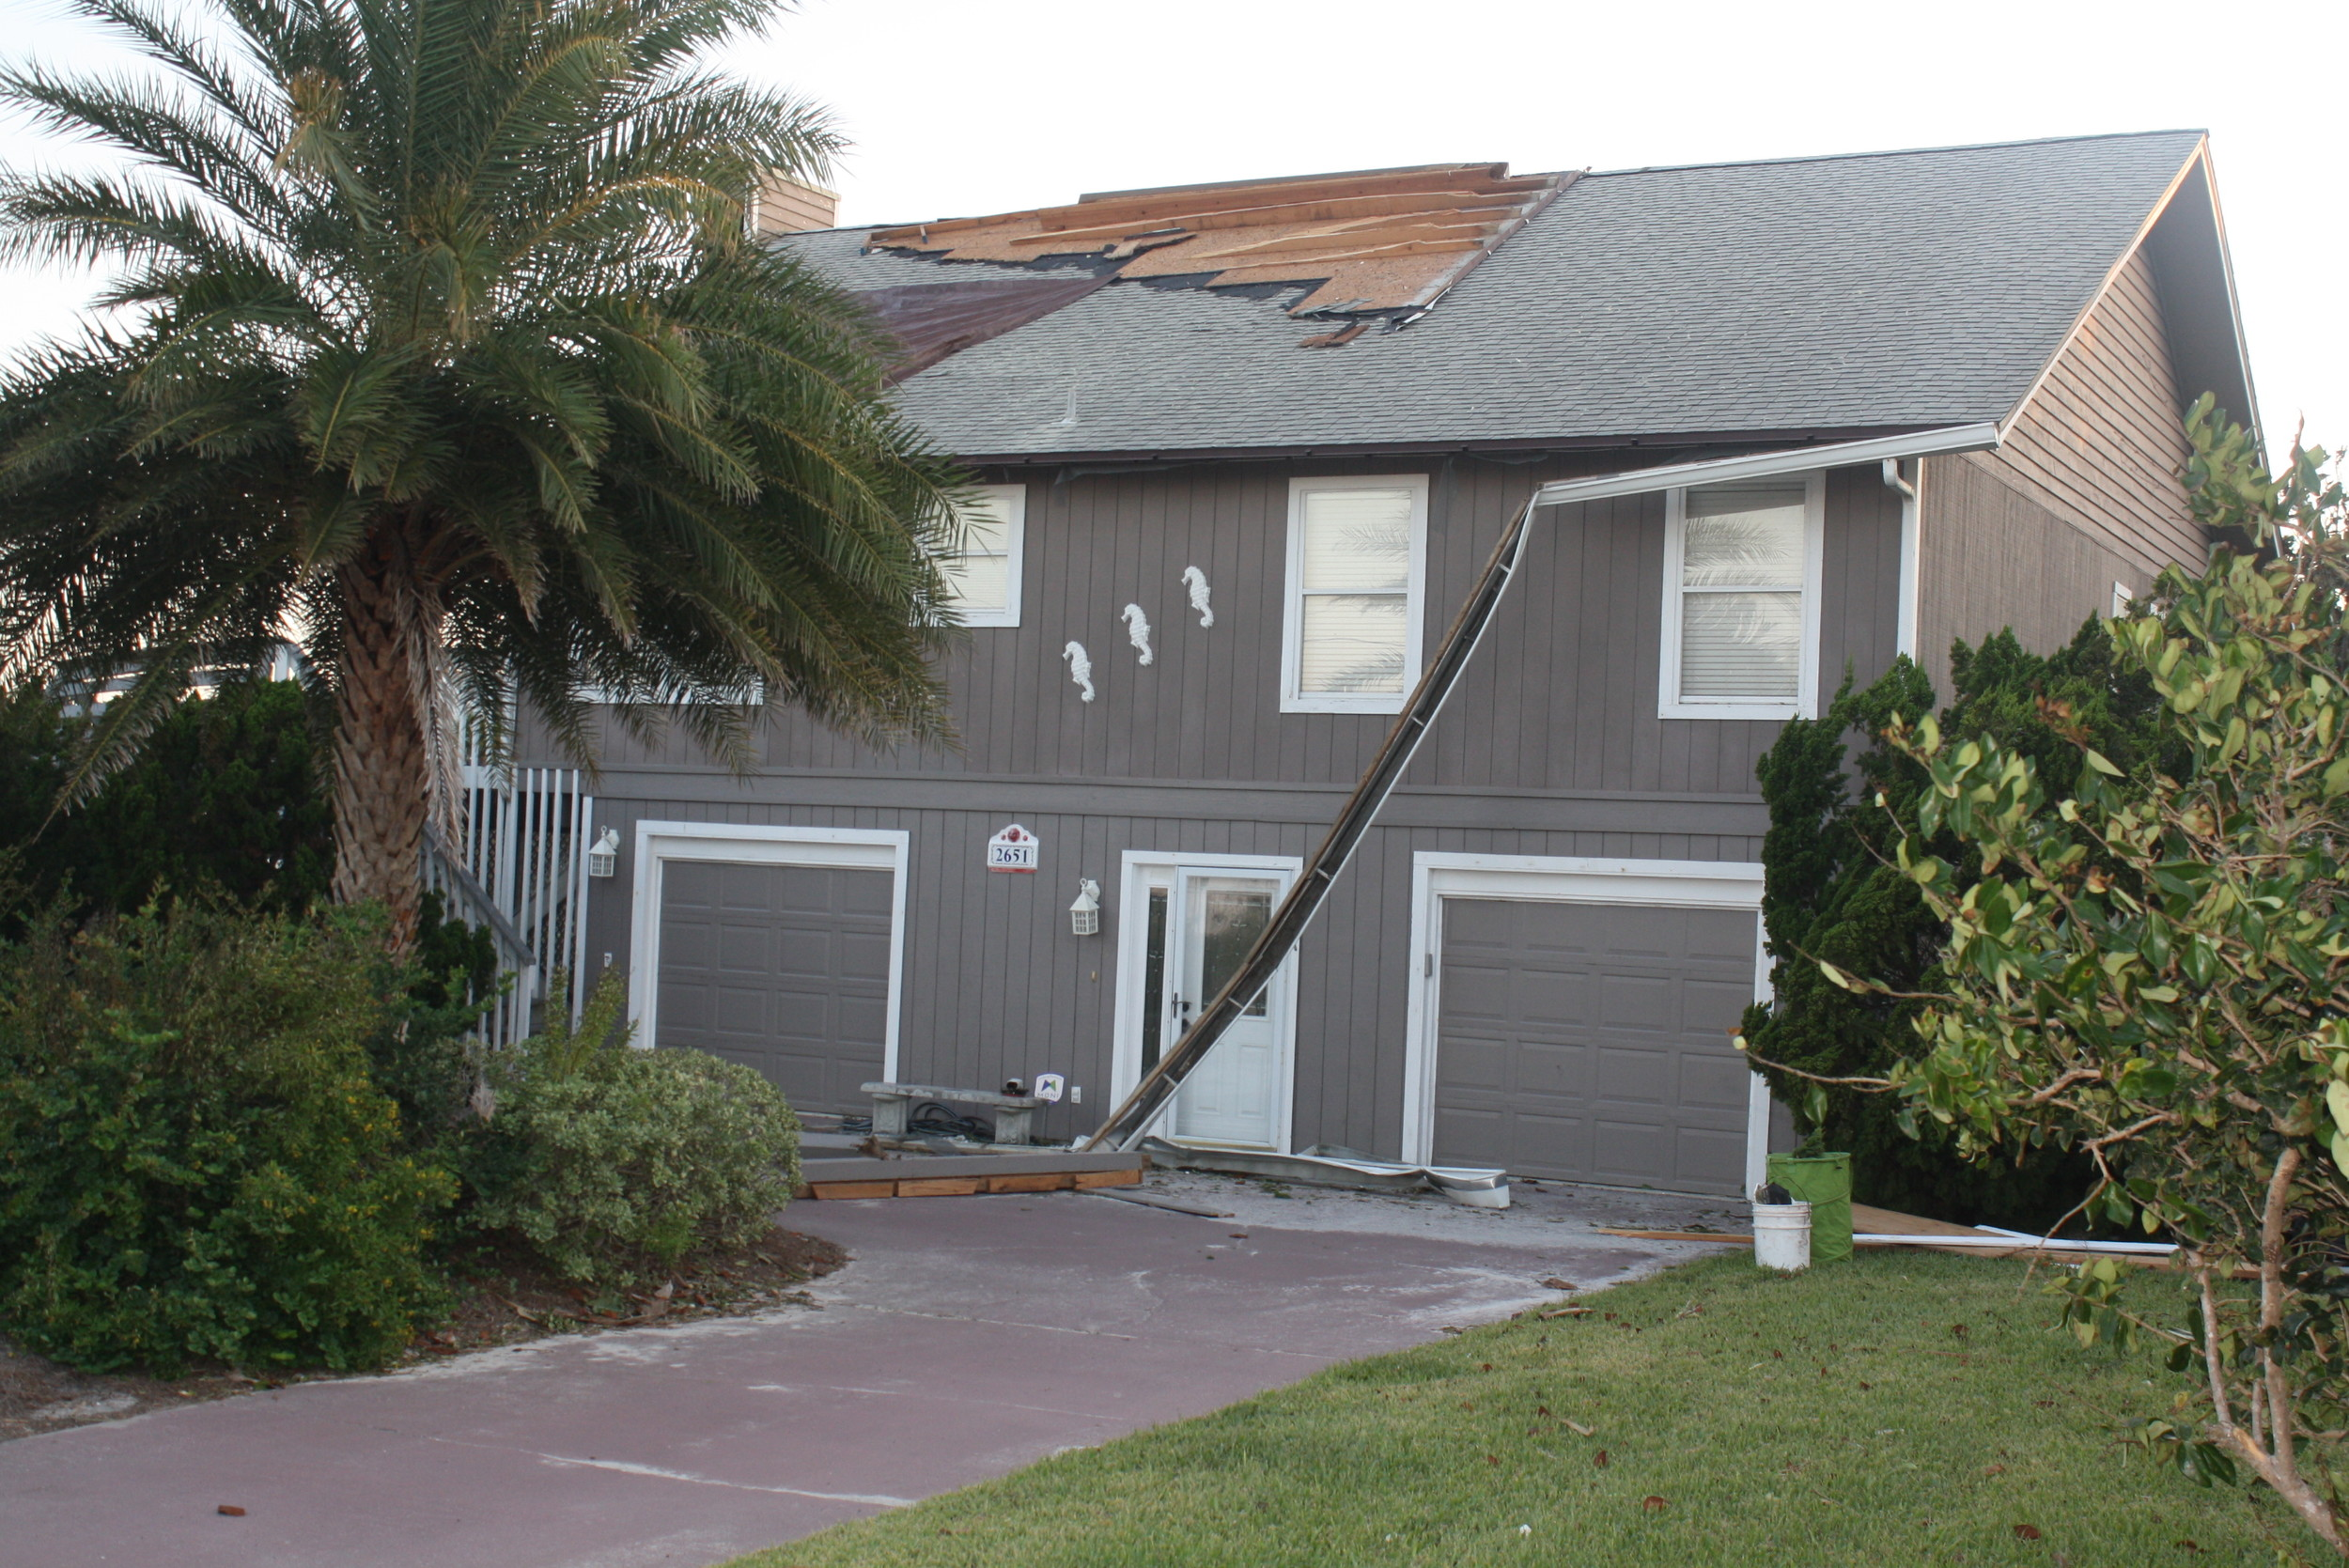 A house in the Porpoise Point neighborhood of Vilano Beach is left without parts of its roof after Hurricane Irma.